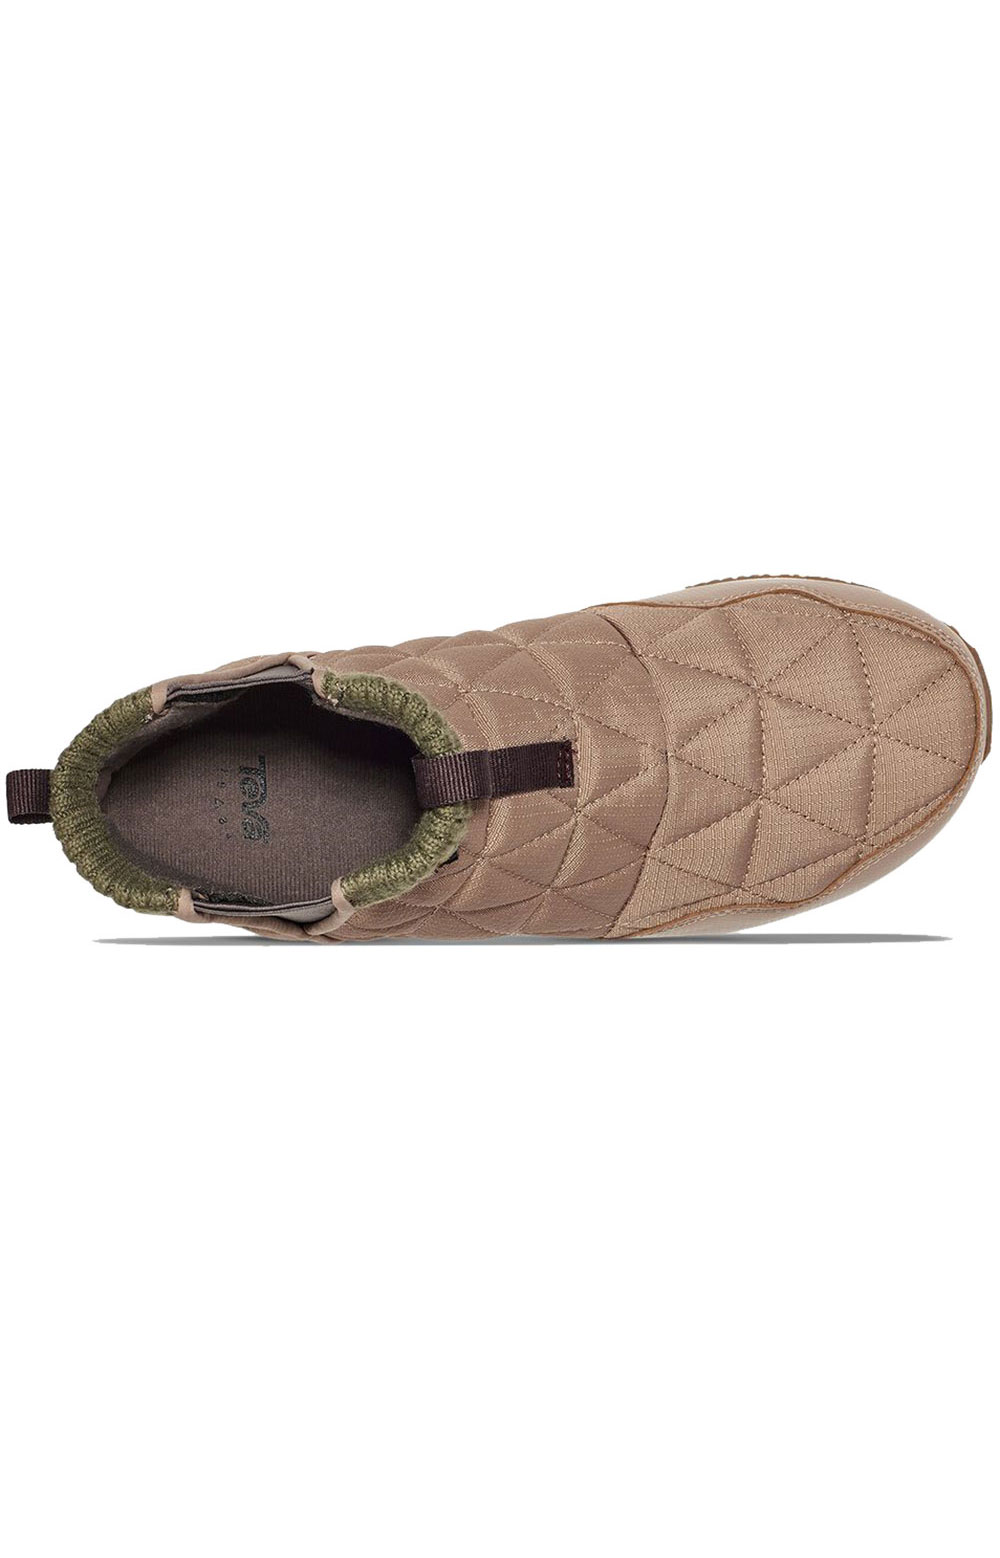 (1123431) ReEMBER Mid Shoes - Macaroon/Olive 5